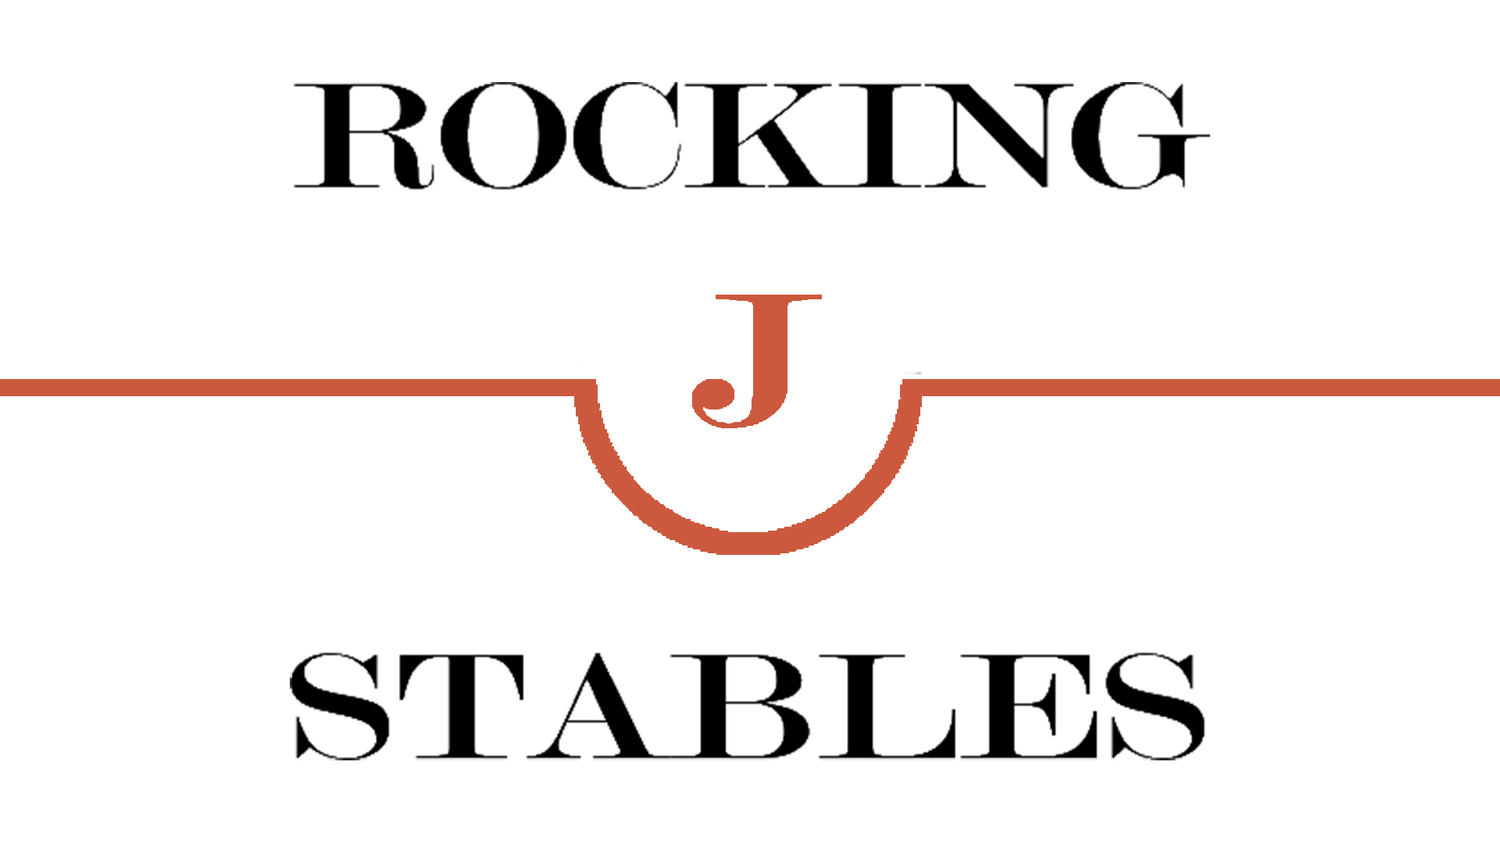 Rocking J Stables | DFW Dallas Fort Worth Garland Horse Barns, Stables, Stalls, Horseback Riding Lessons